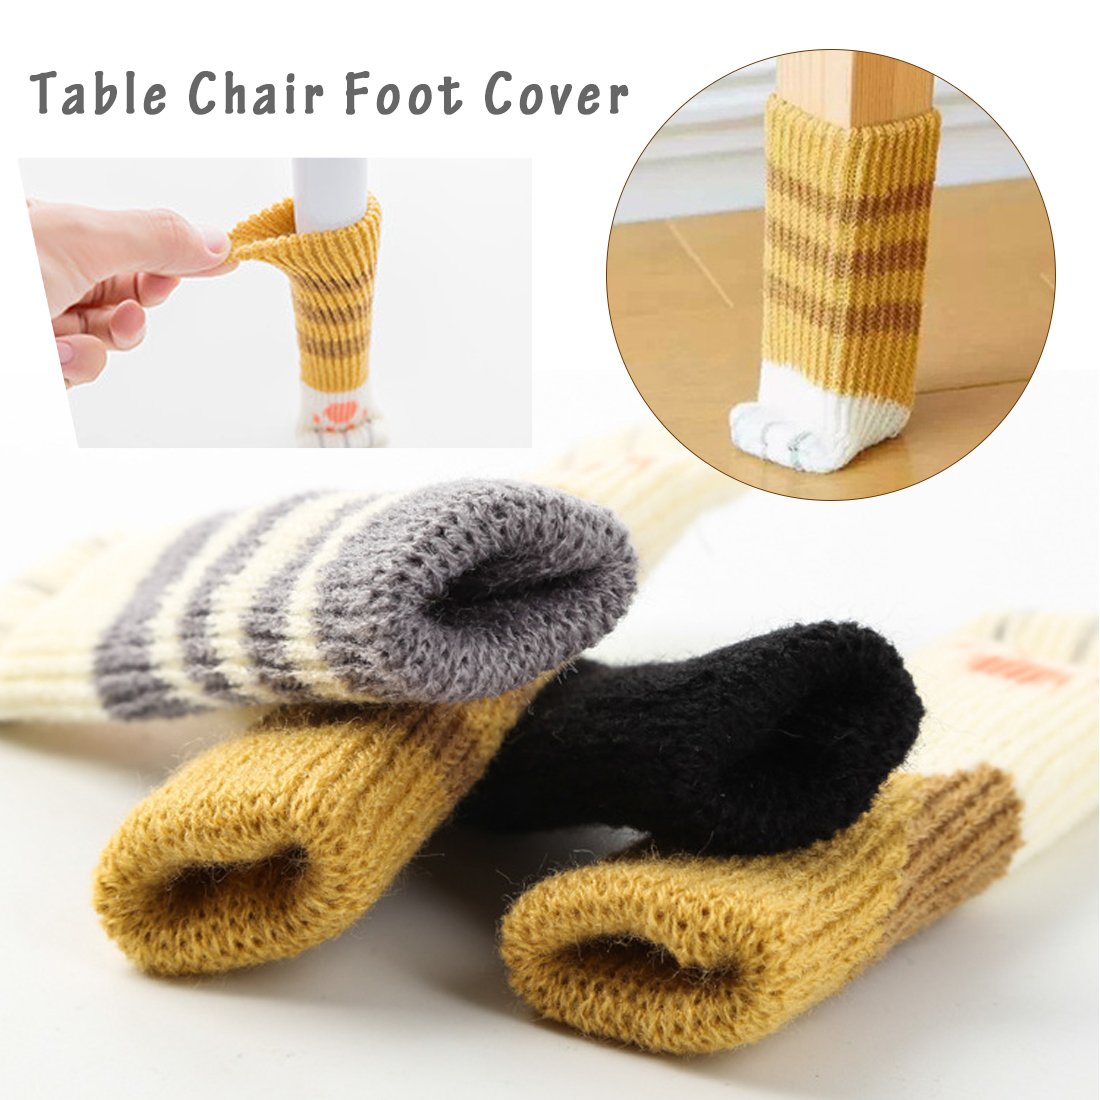 4pcs /set Cute Lovely Cat Paw Table Chair Foot Leg Knit Cover Protector Socks Sleeve Protector 5 Colors WholeSale